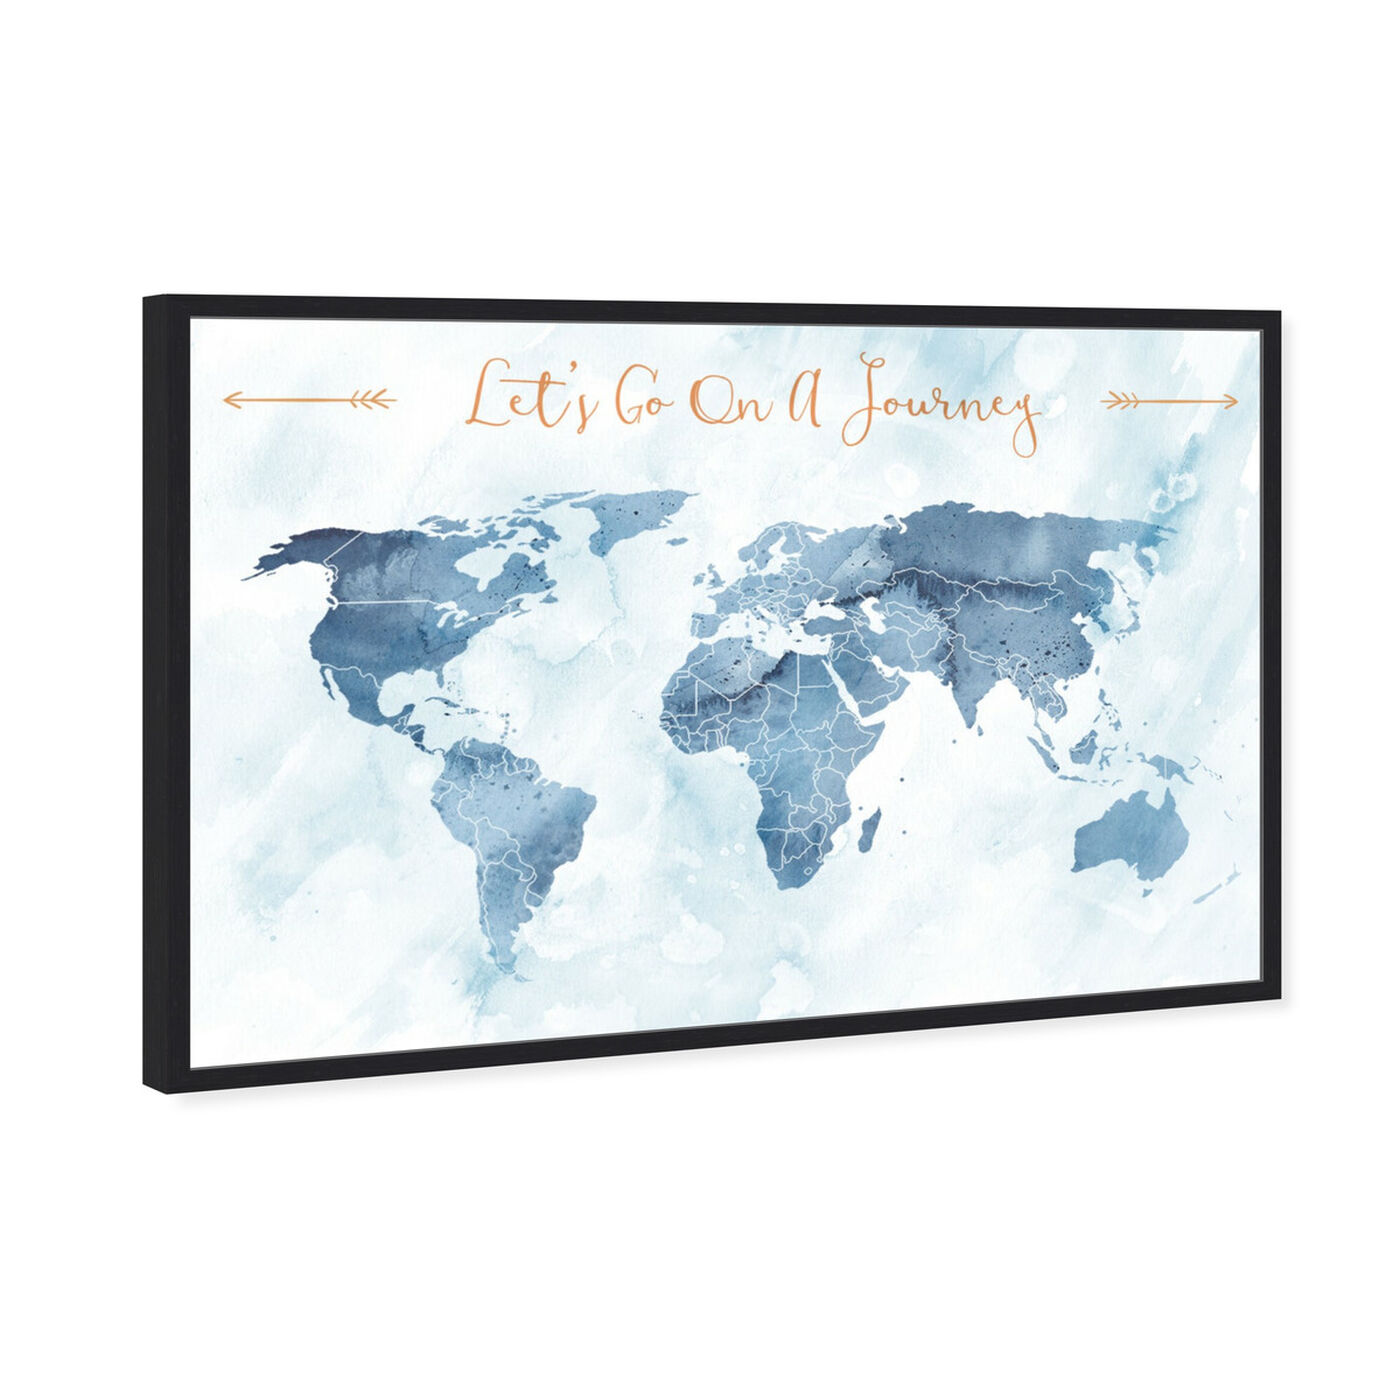 Angled view of Lets Go On A Journey featuring maps and flags and world maps art.